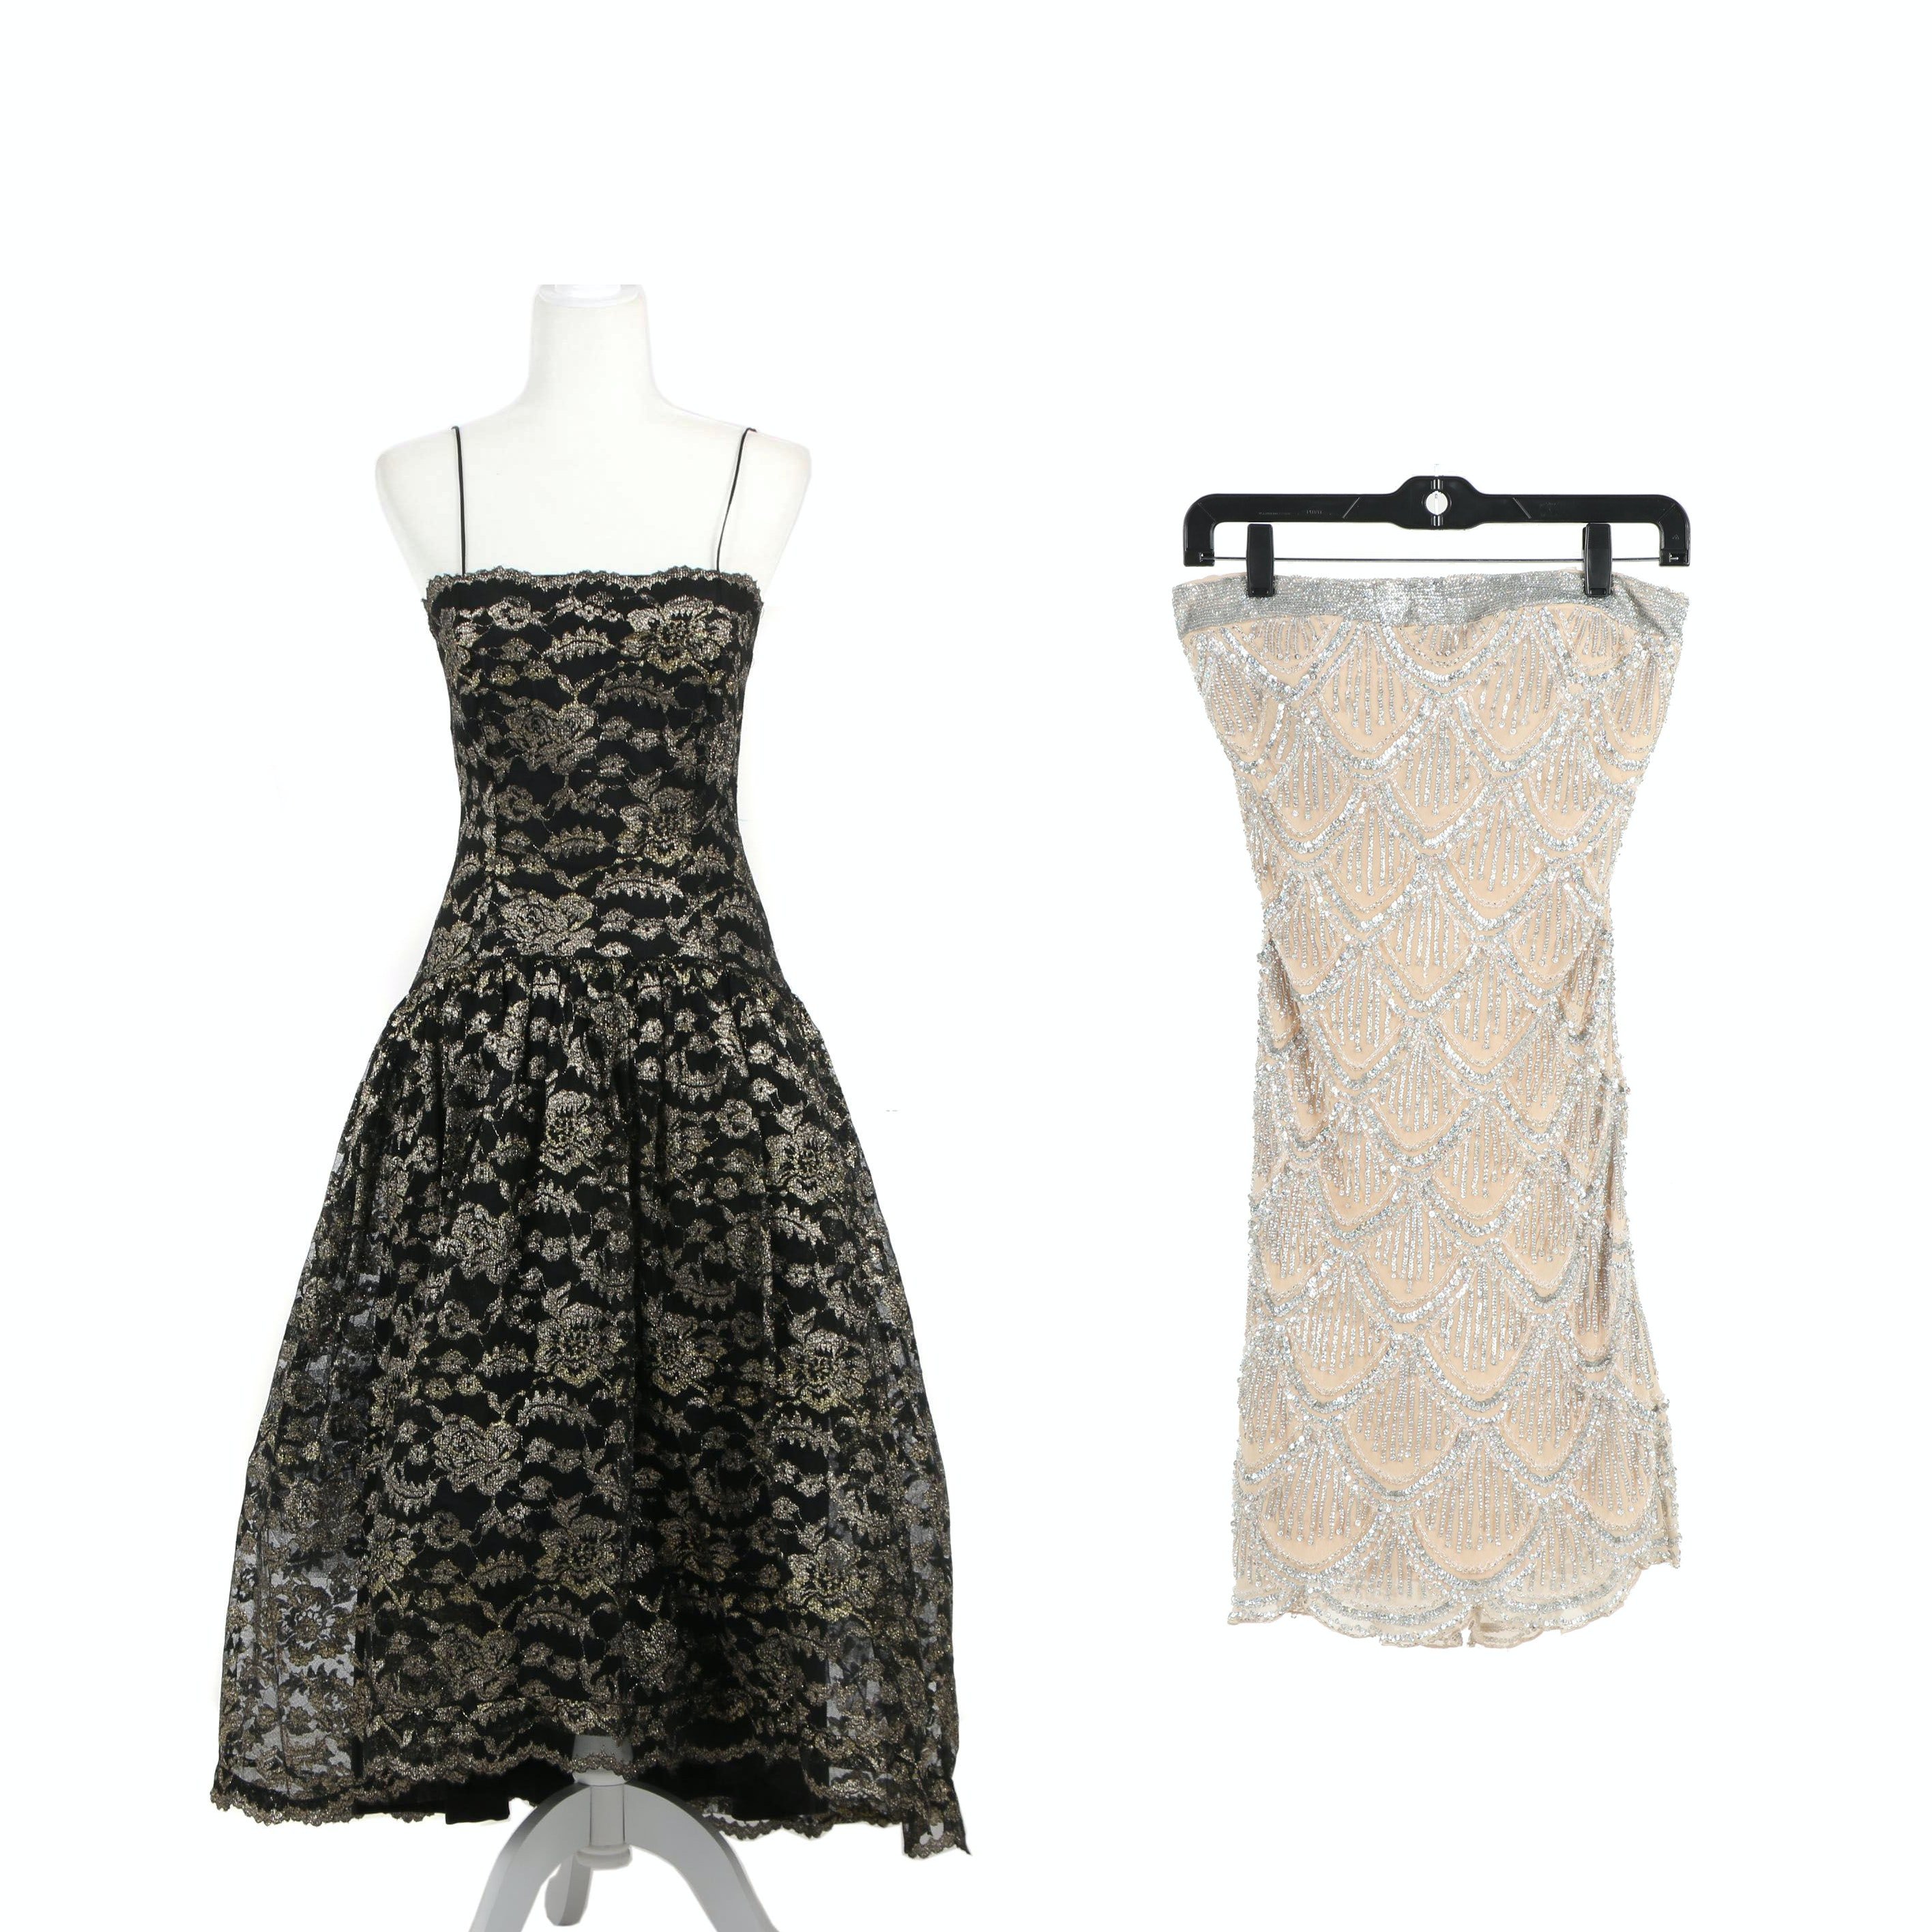 Black and Metallic Gold Tulle Dress and Basix Black Label Sequined Silk Dress